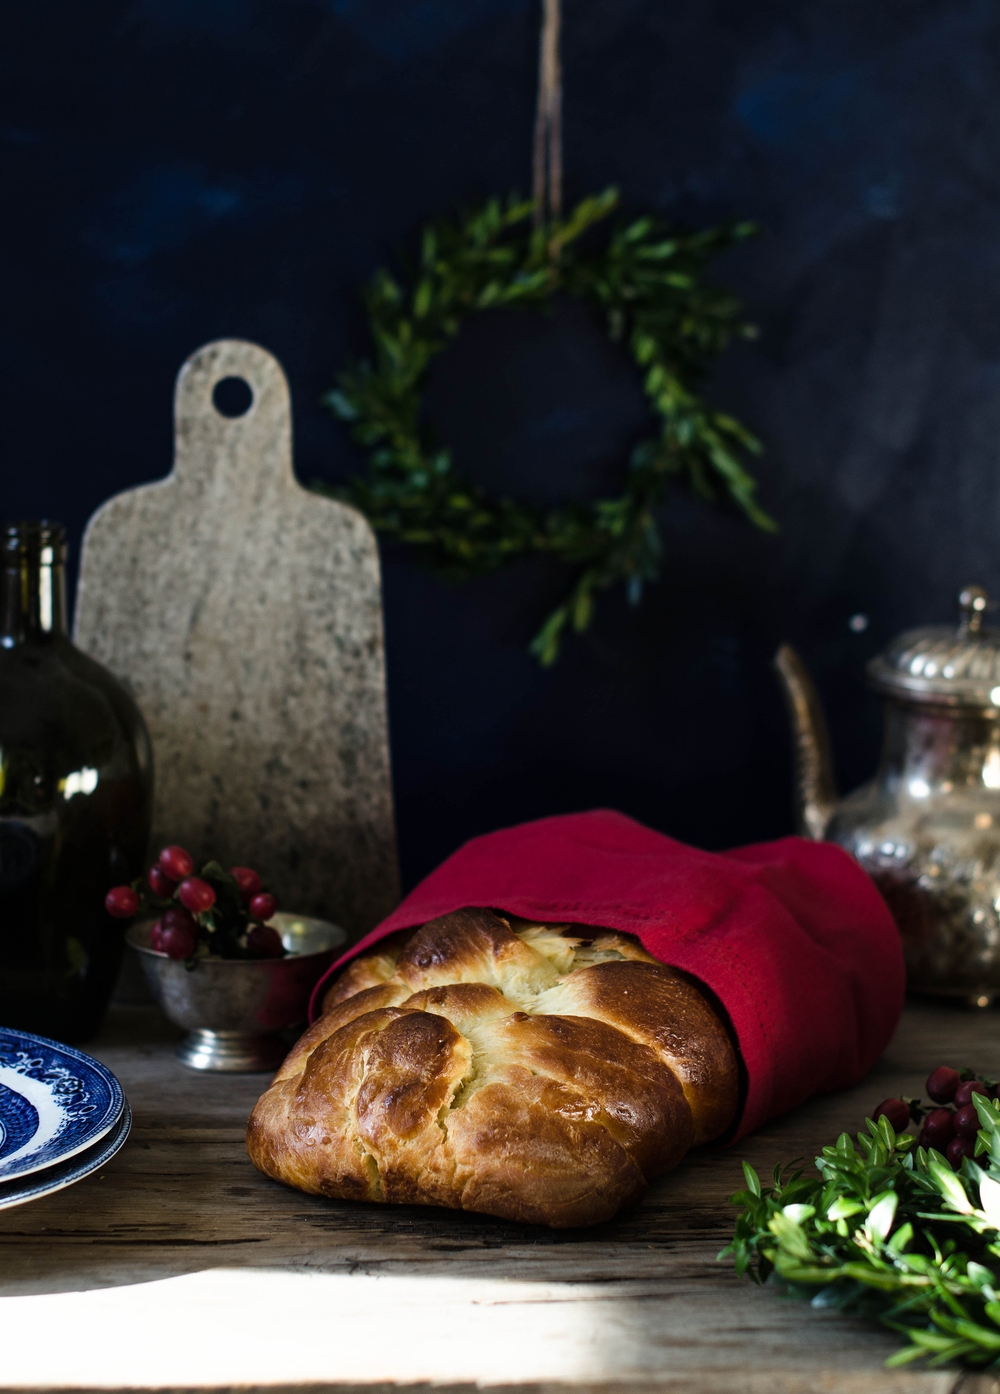 ROSE & IVY JOURNAL CHALLAH BREAD